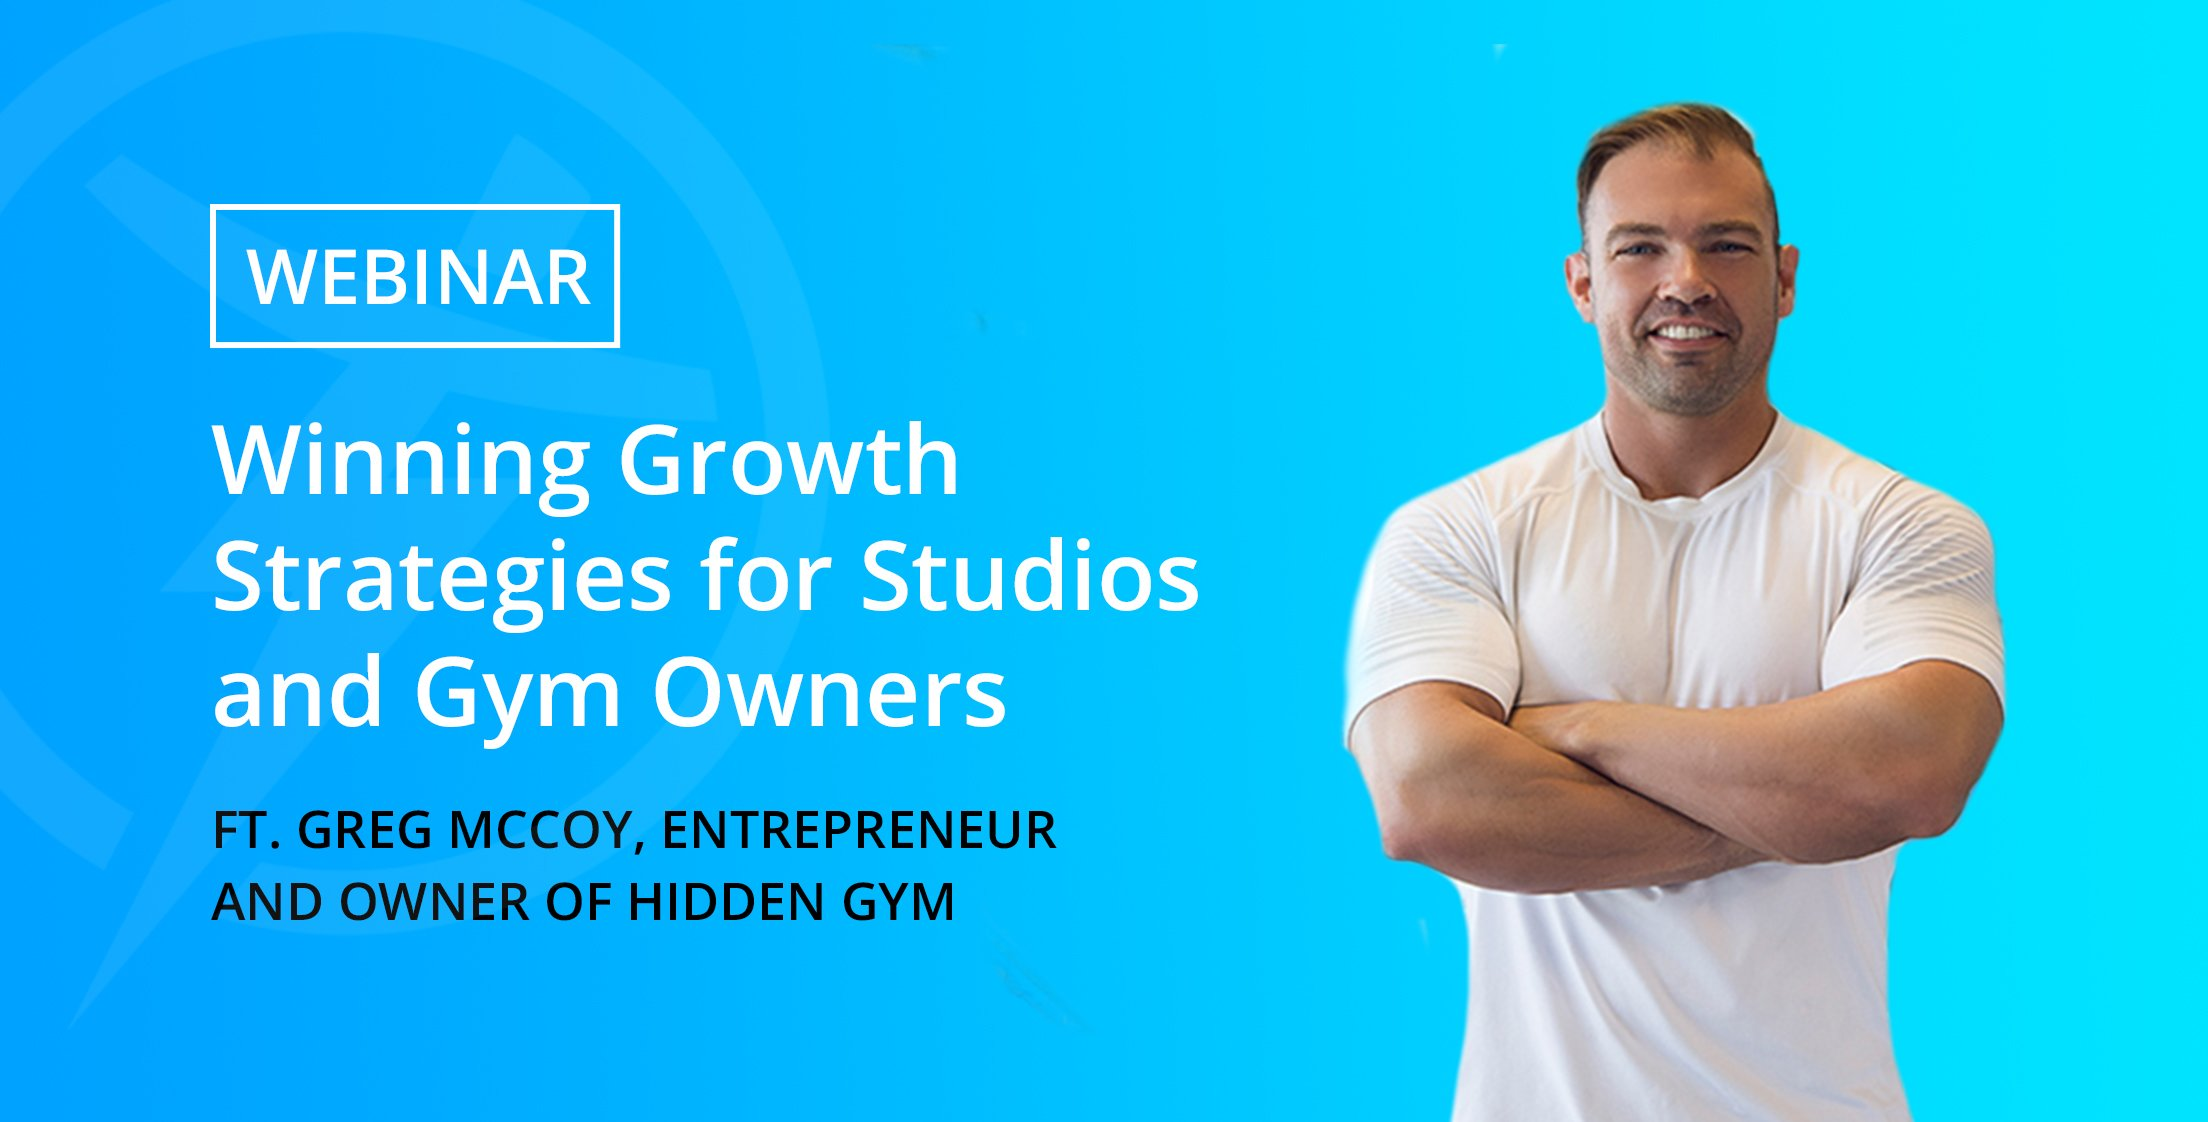 Trainerize Webinar: Winning Growth Strategies for Studios and Gym Owners